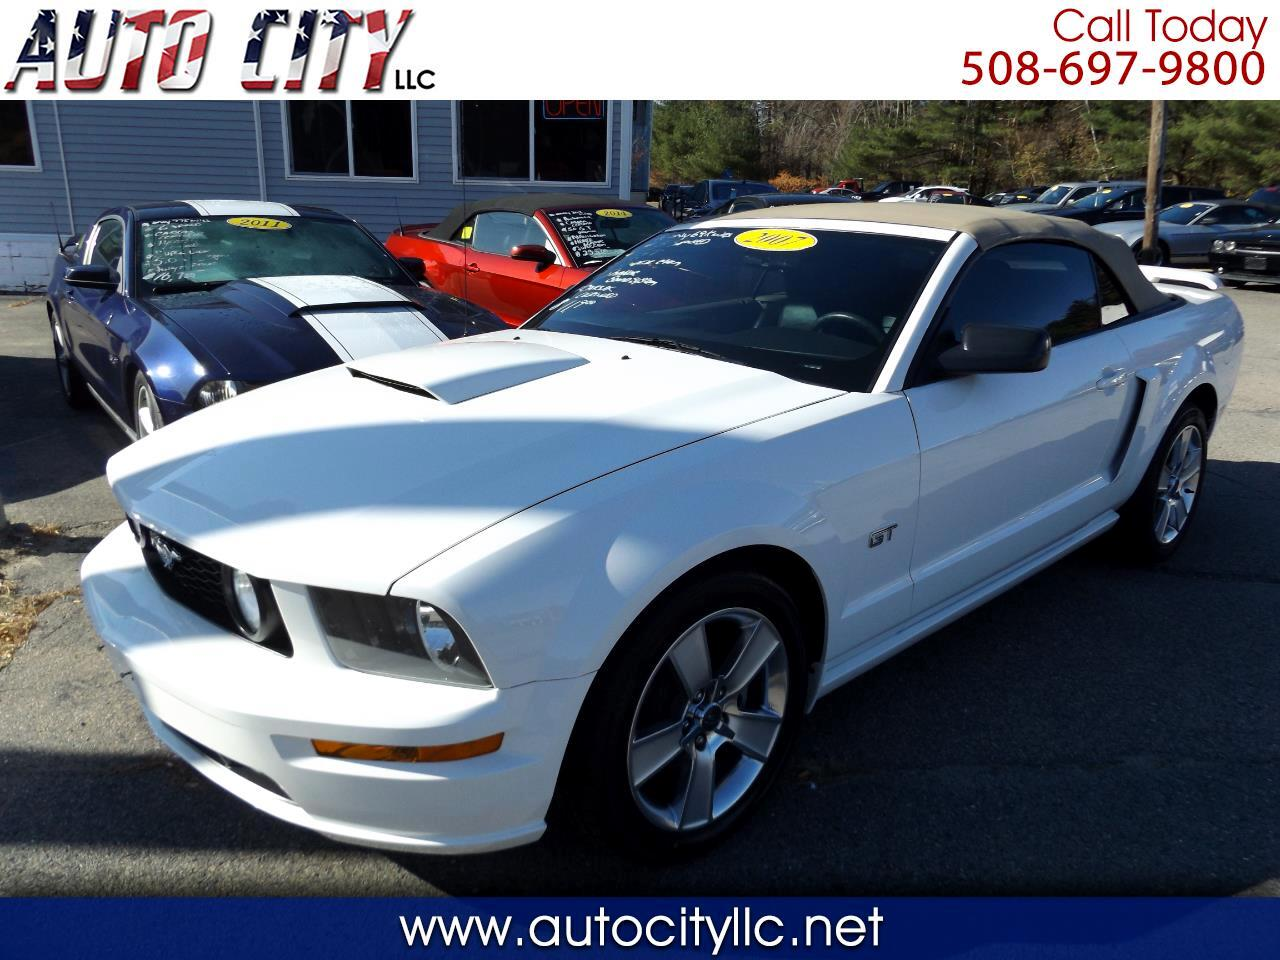 Ford Mustang GT Premium Convertible 2007